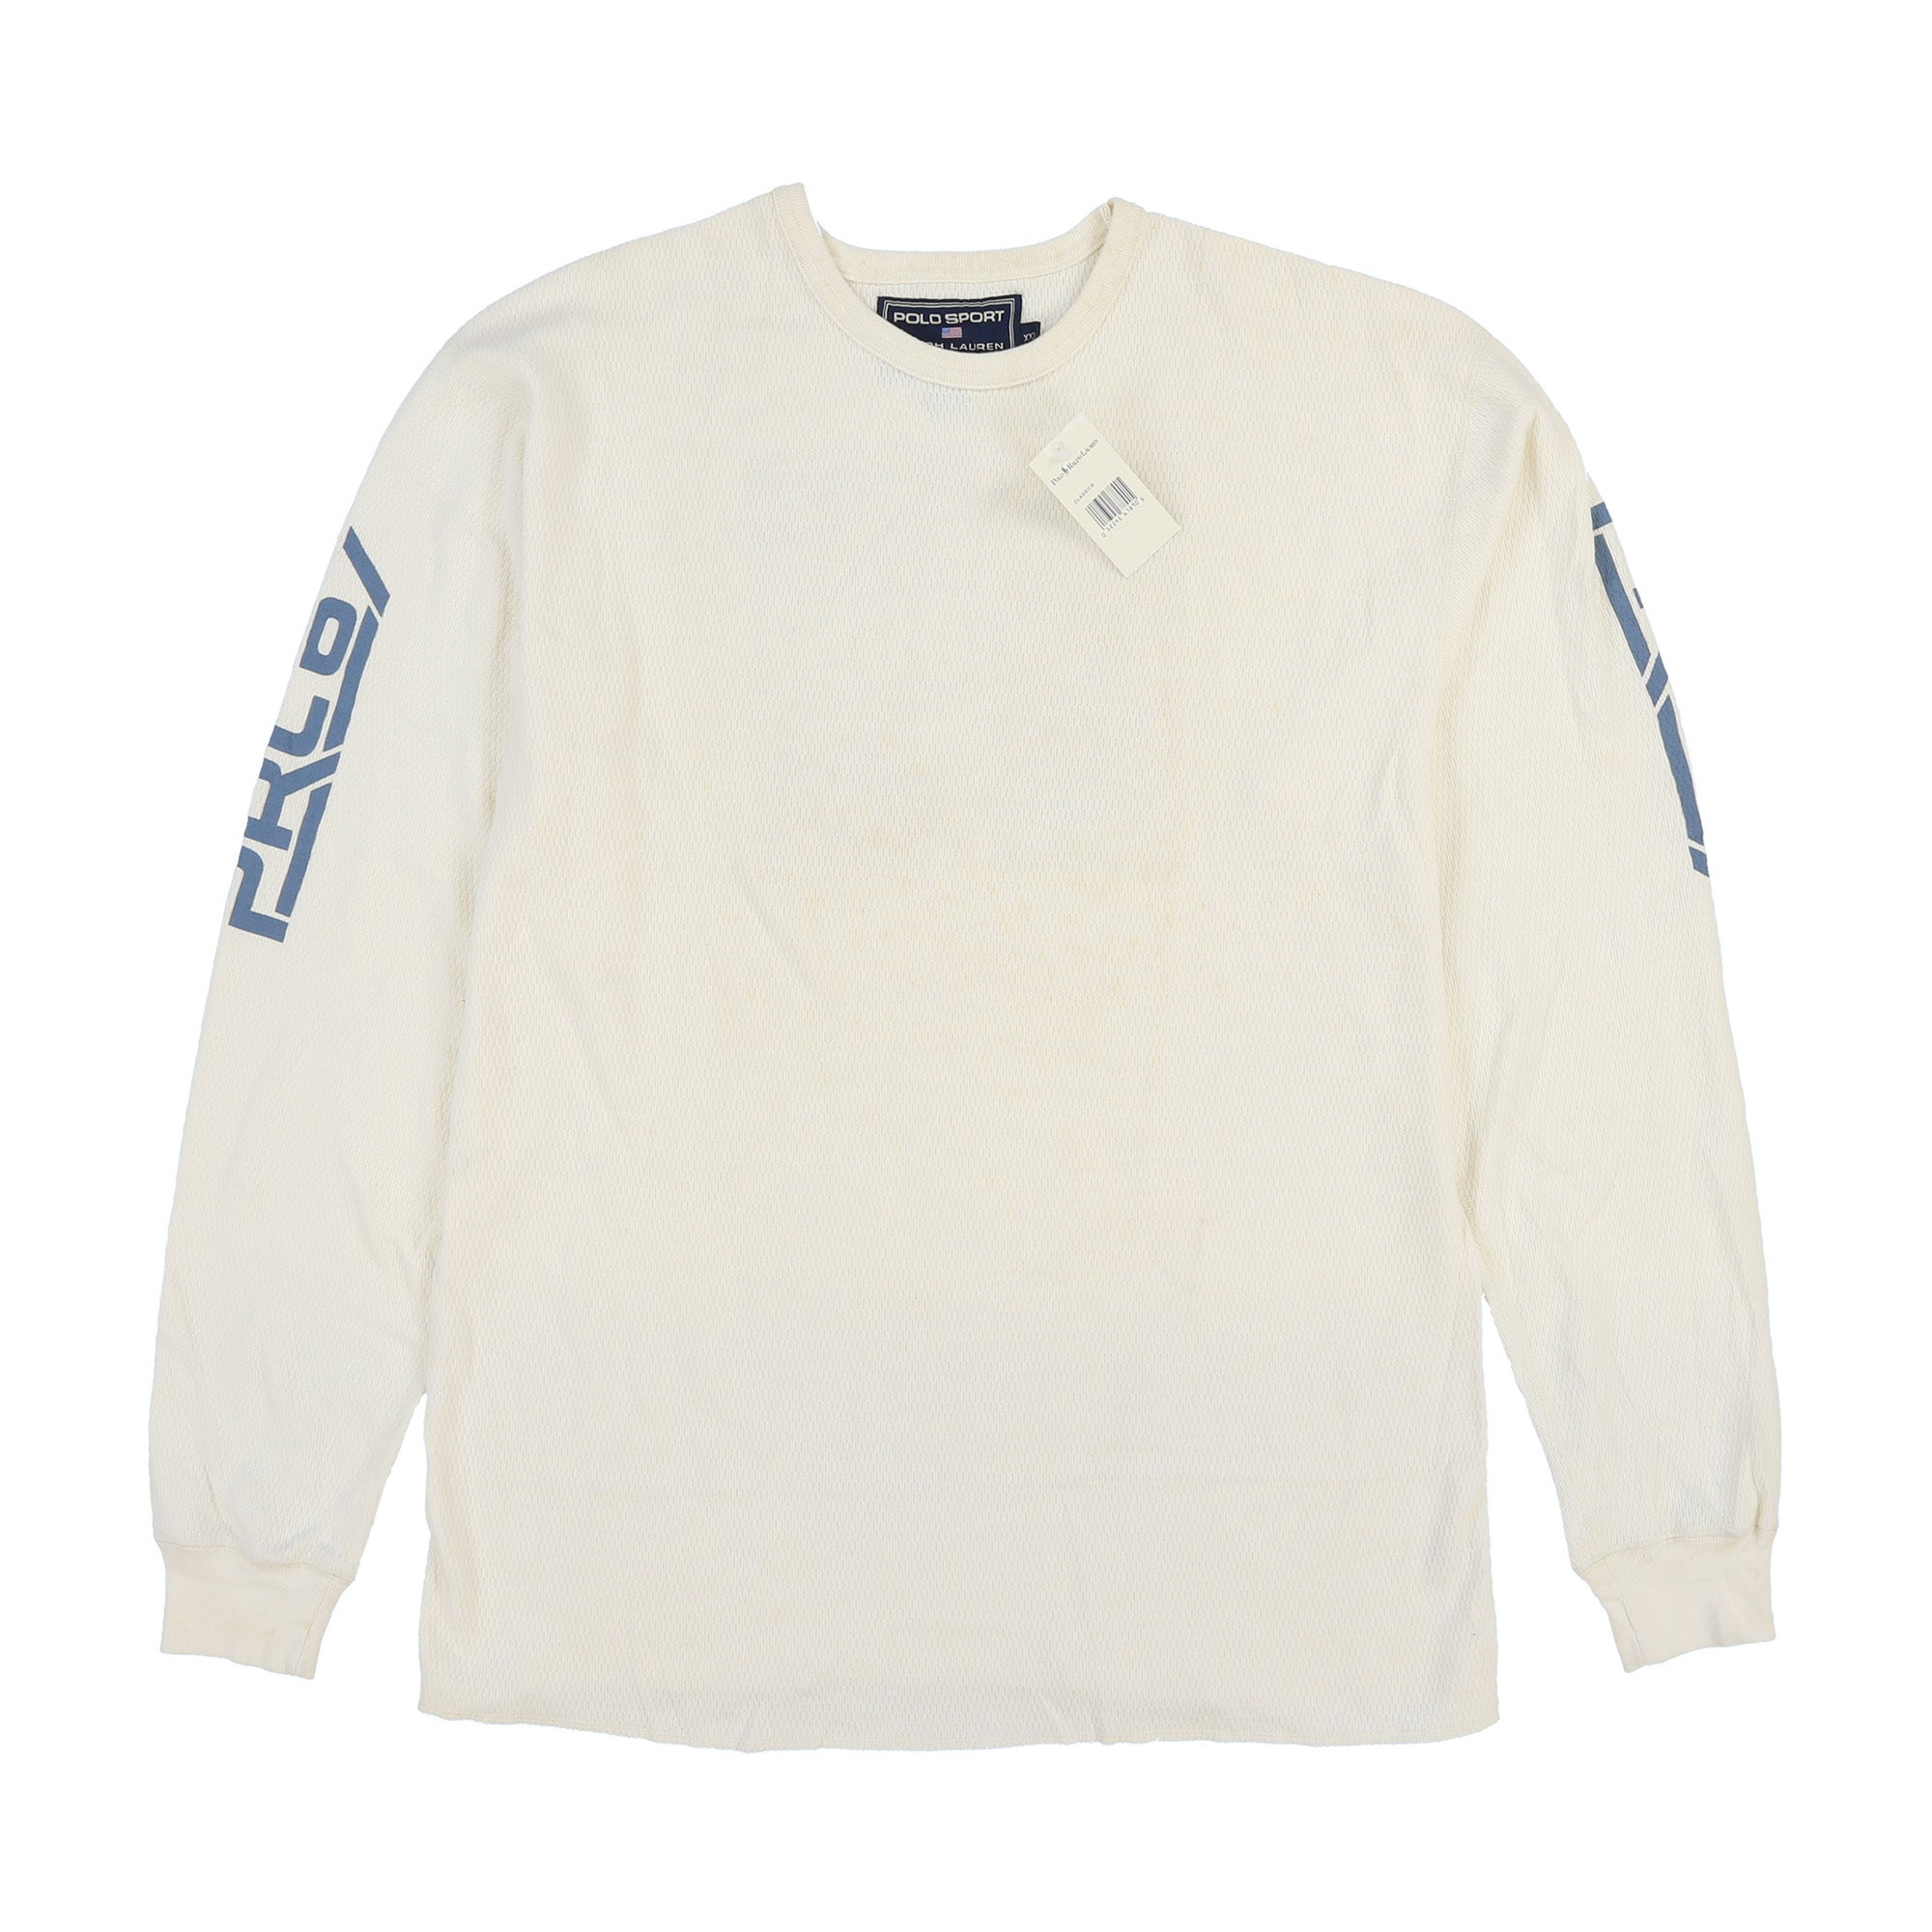 POLO SPORT SUPERCROSS PRO 2000 THERMAL LS TEE // NATURAL